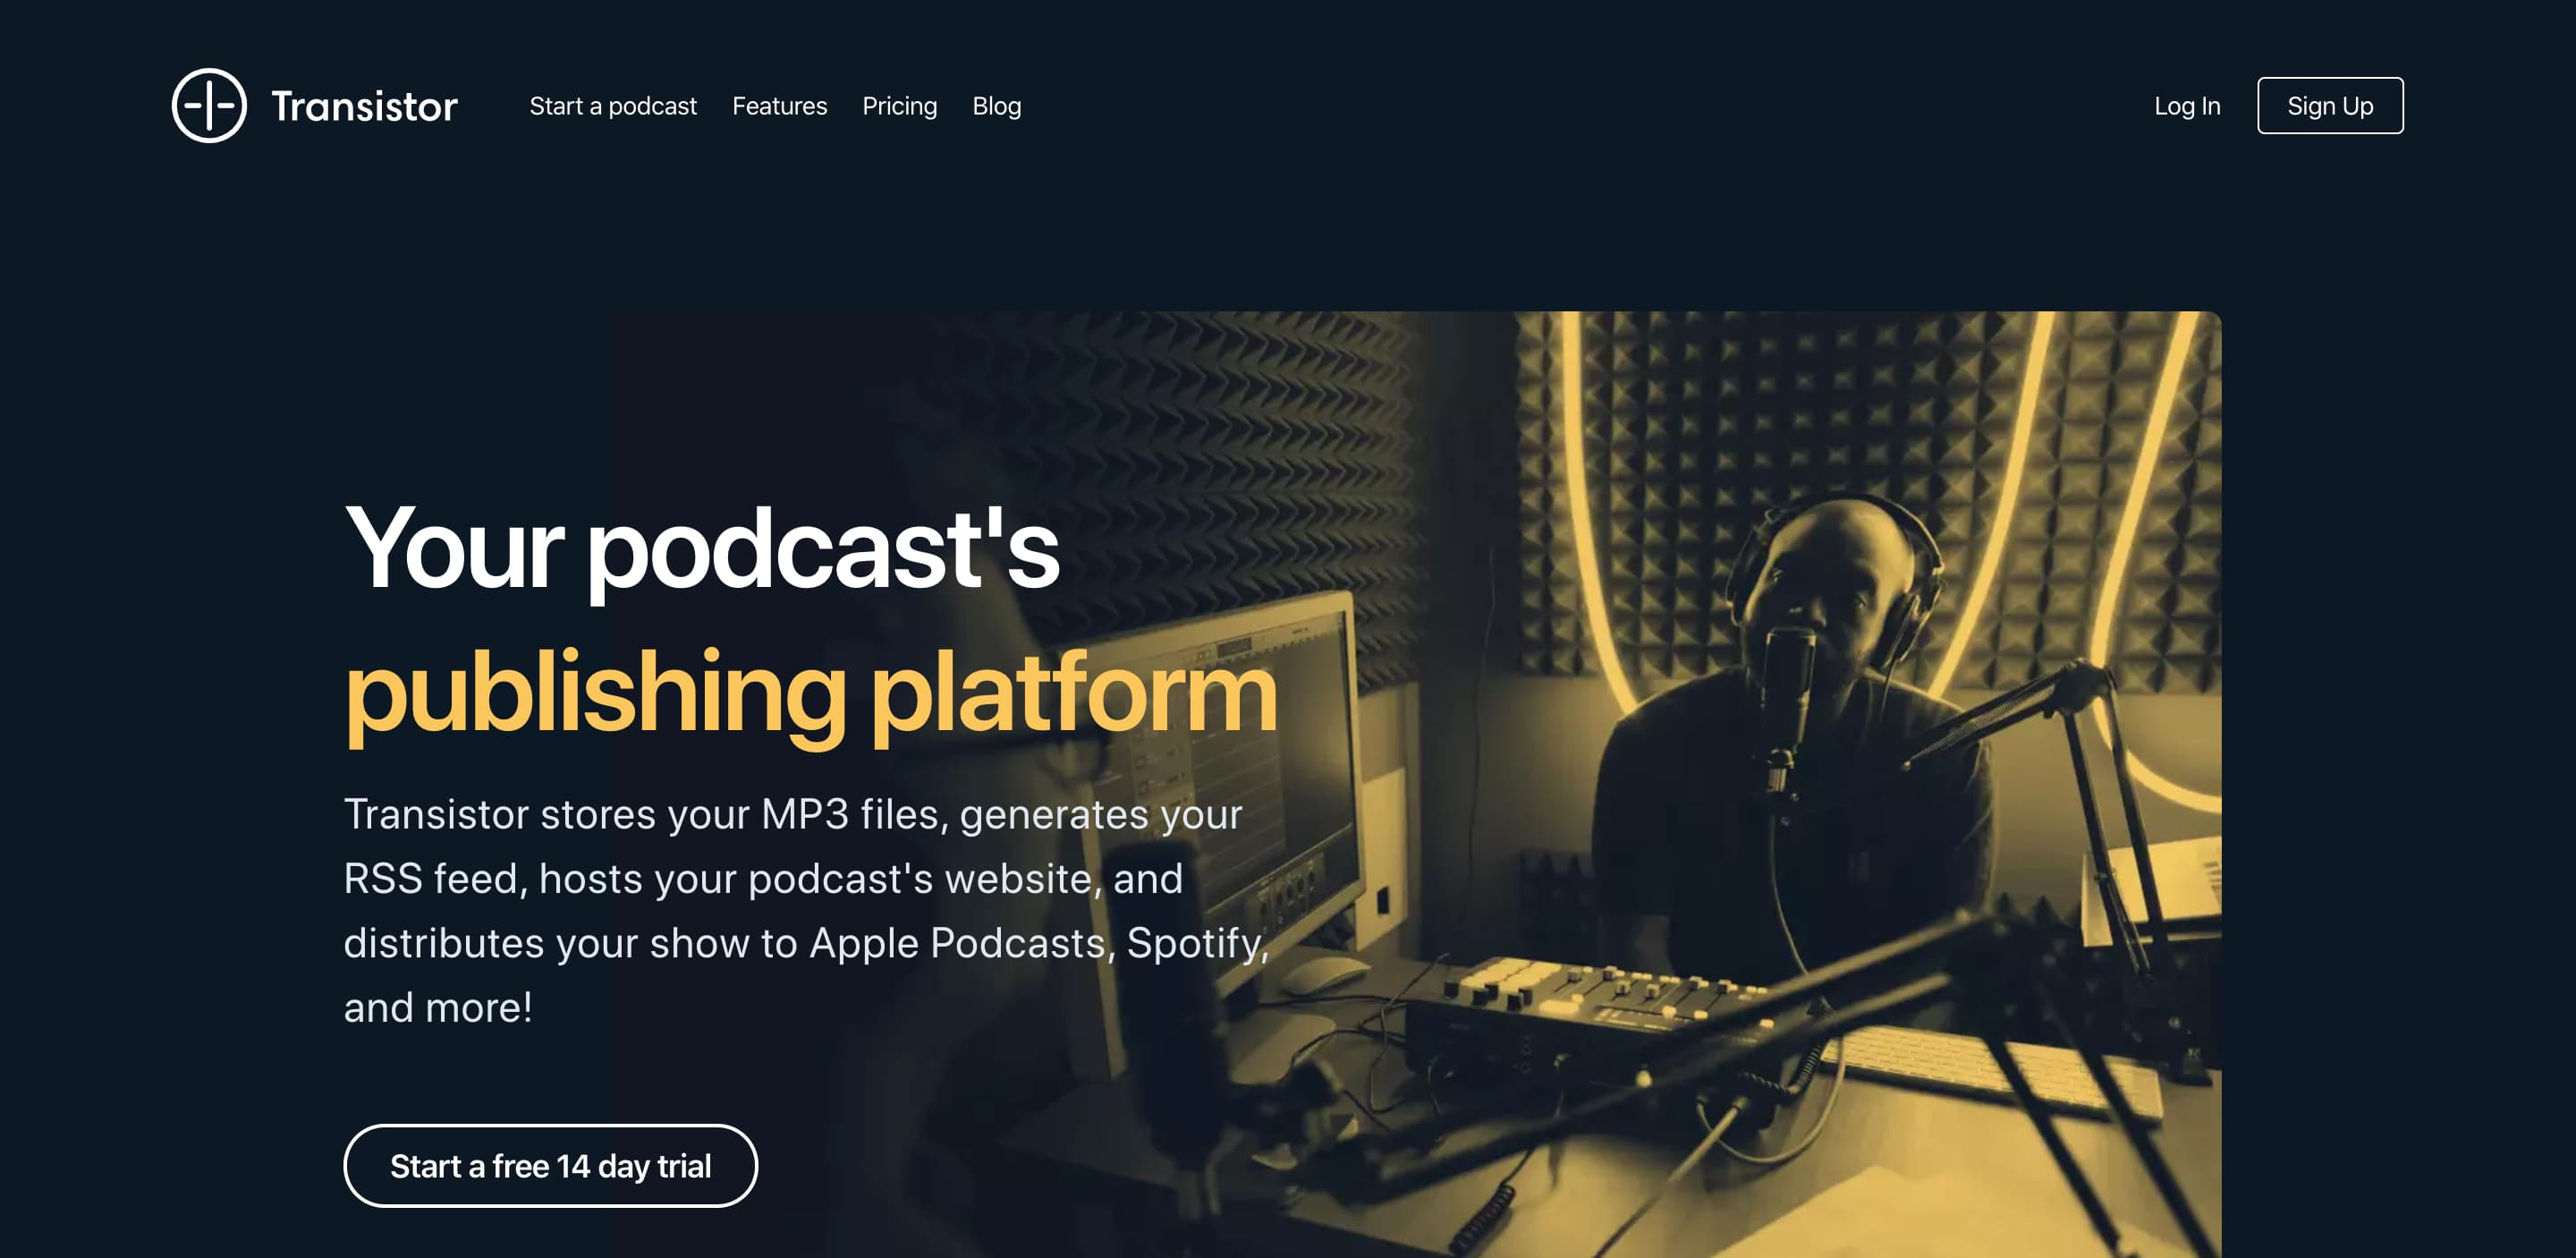 Transistor podcast hosting homepage